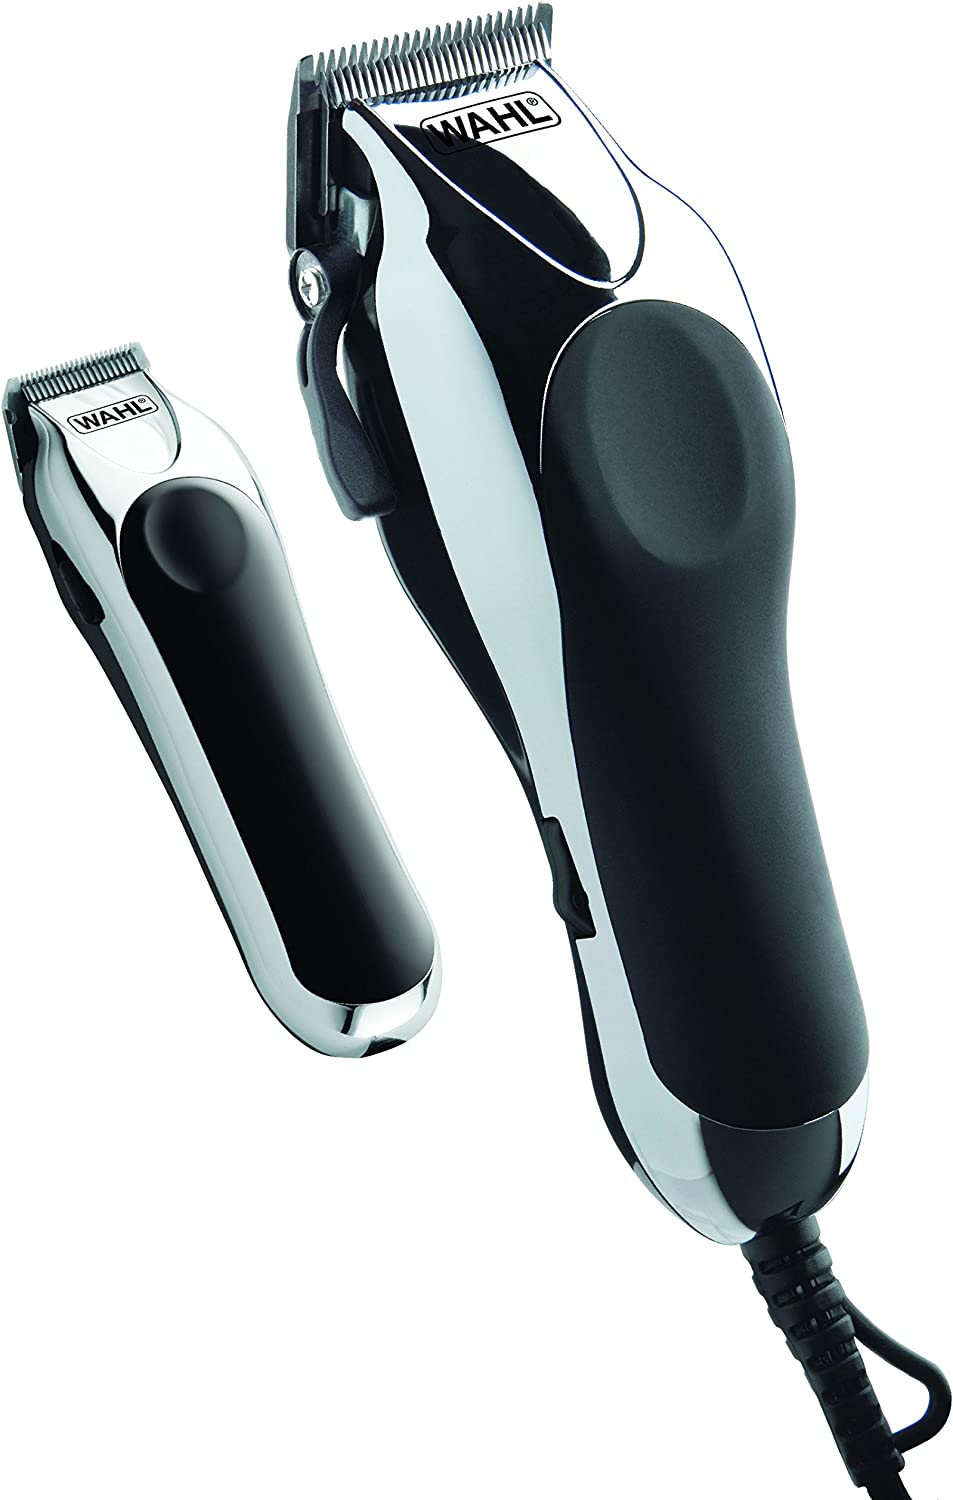 CORTAPELO WAHL DELUX CRHOME PRO COMBO 79524-2716